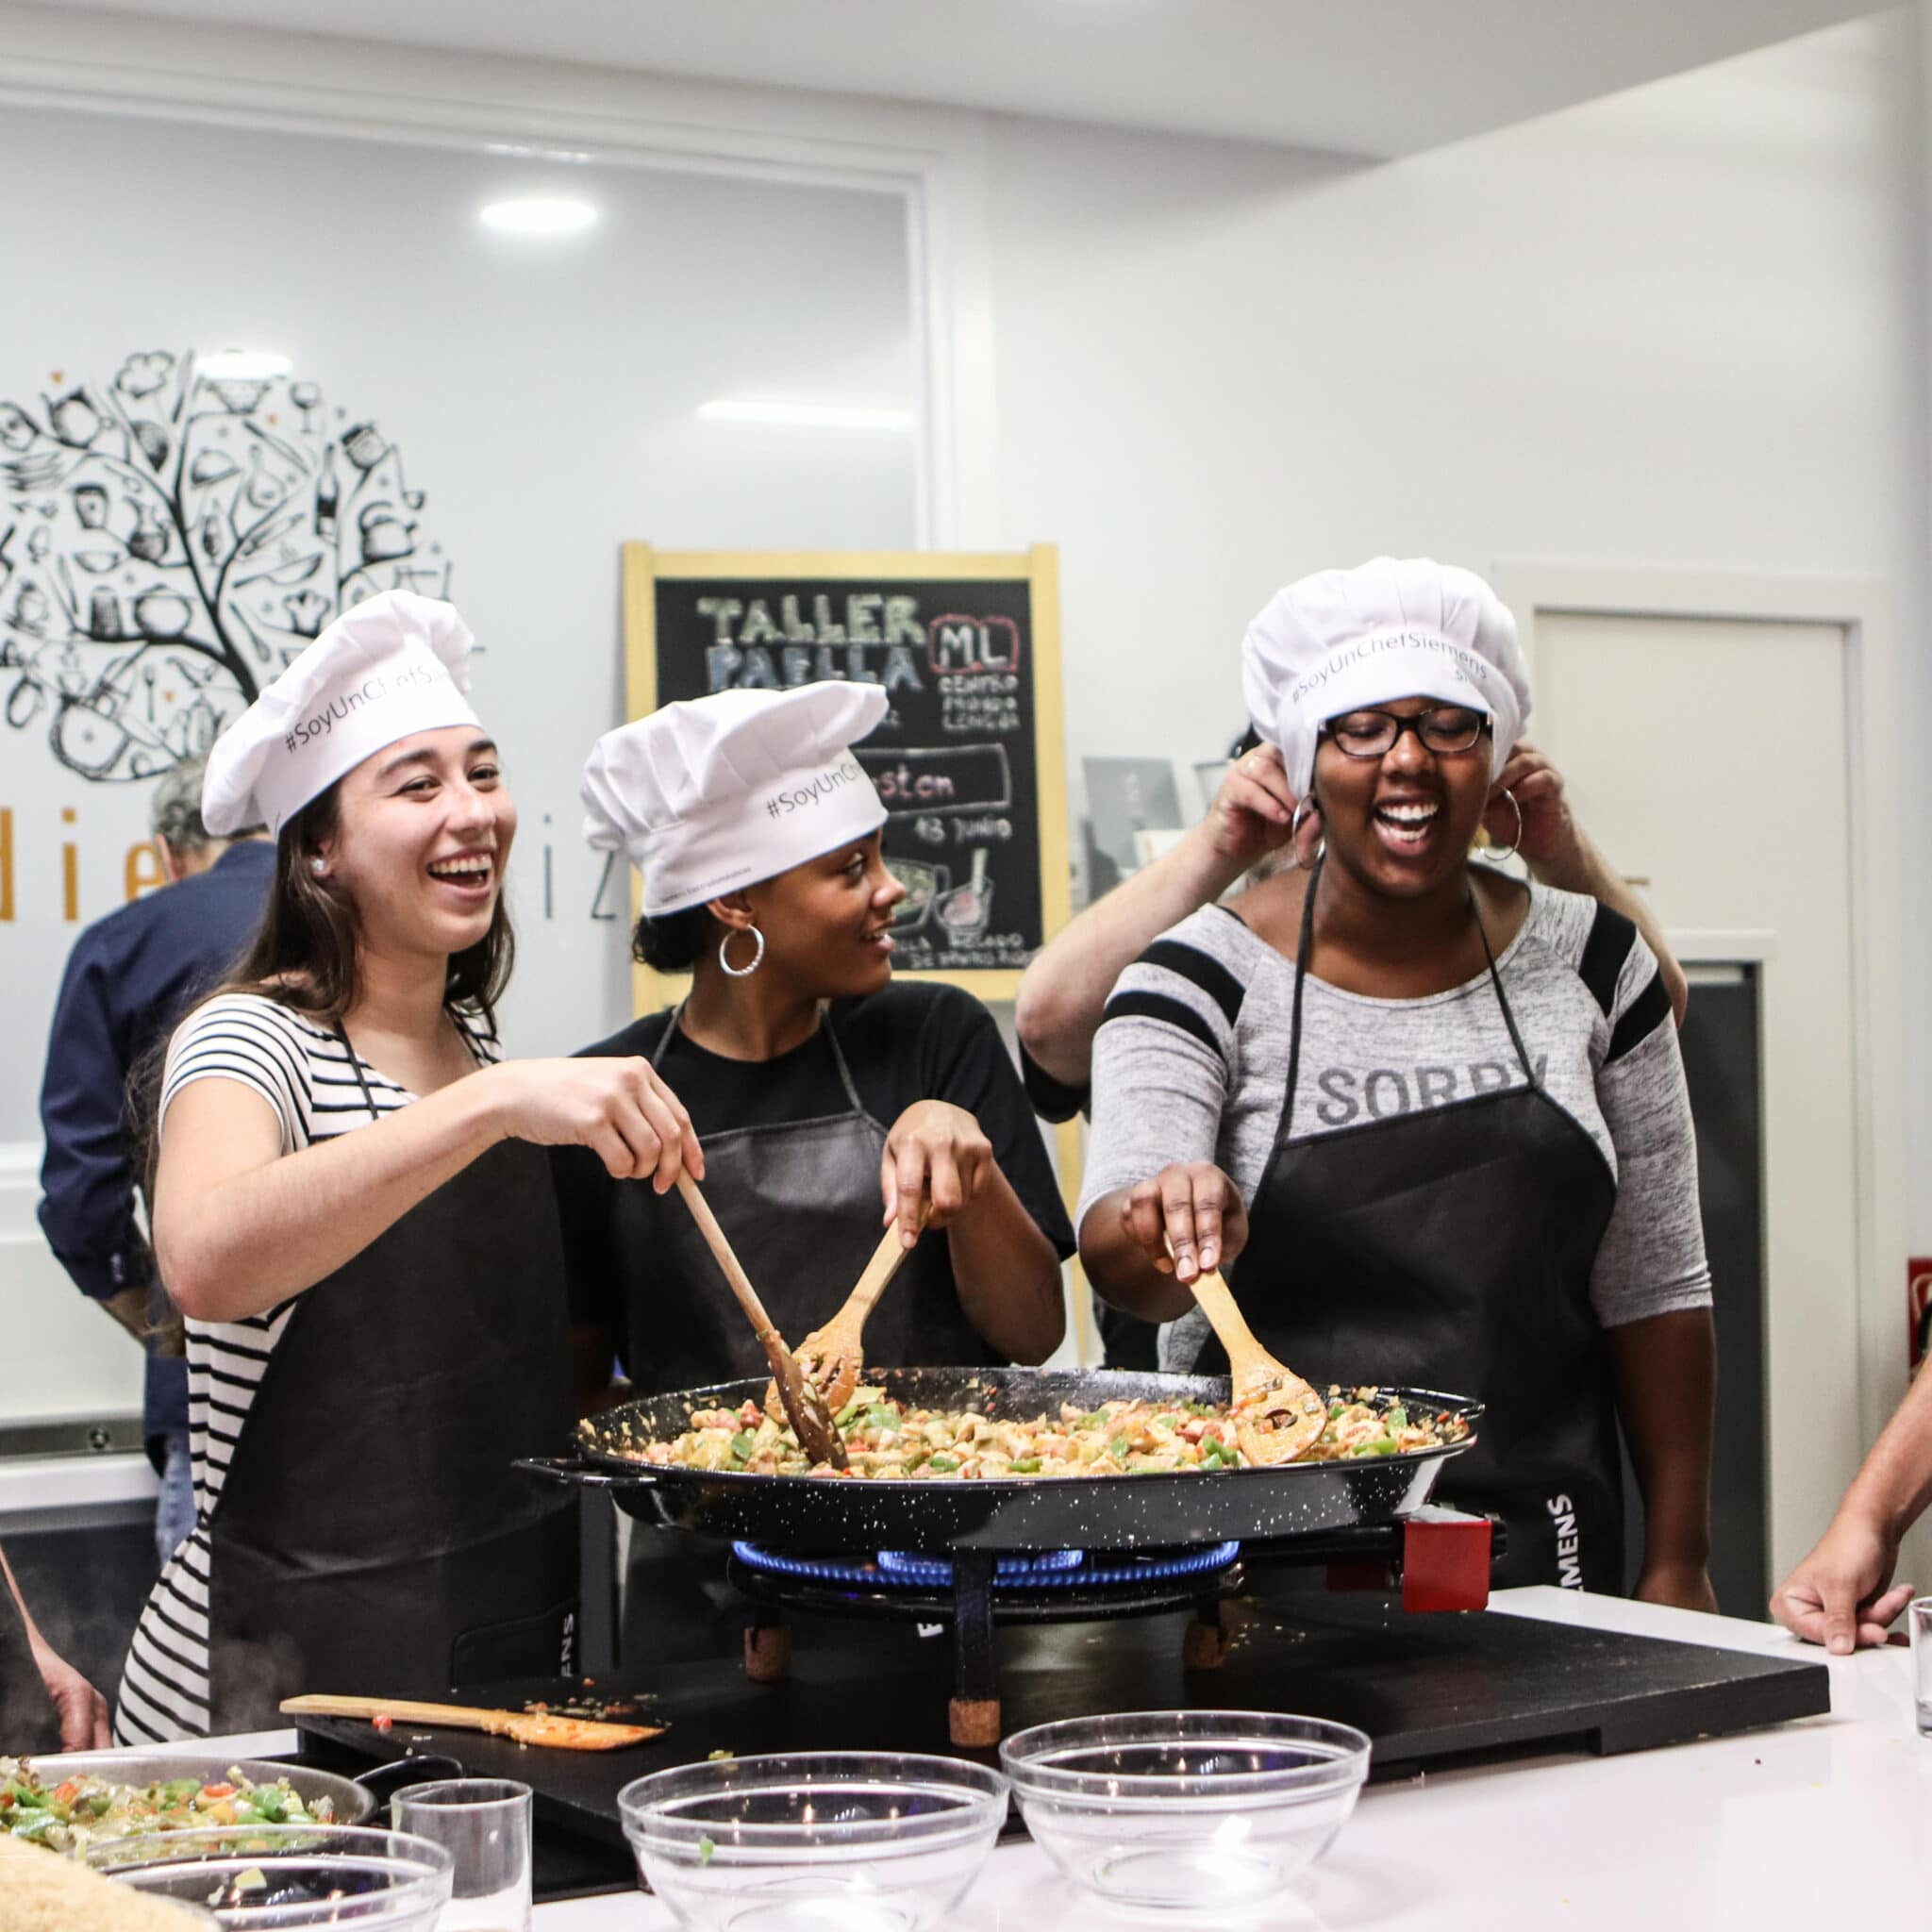 cooking paella - summer volunteer abroad programs for college students